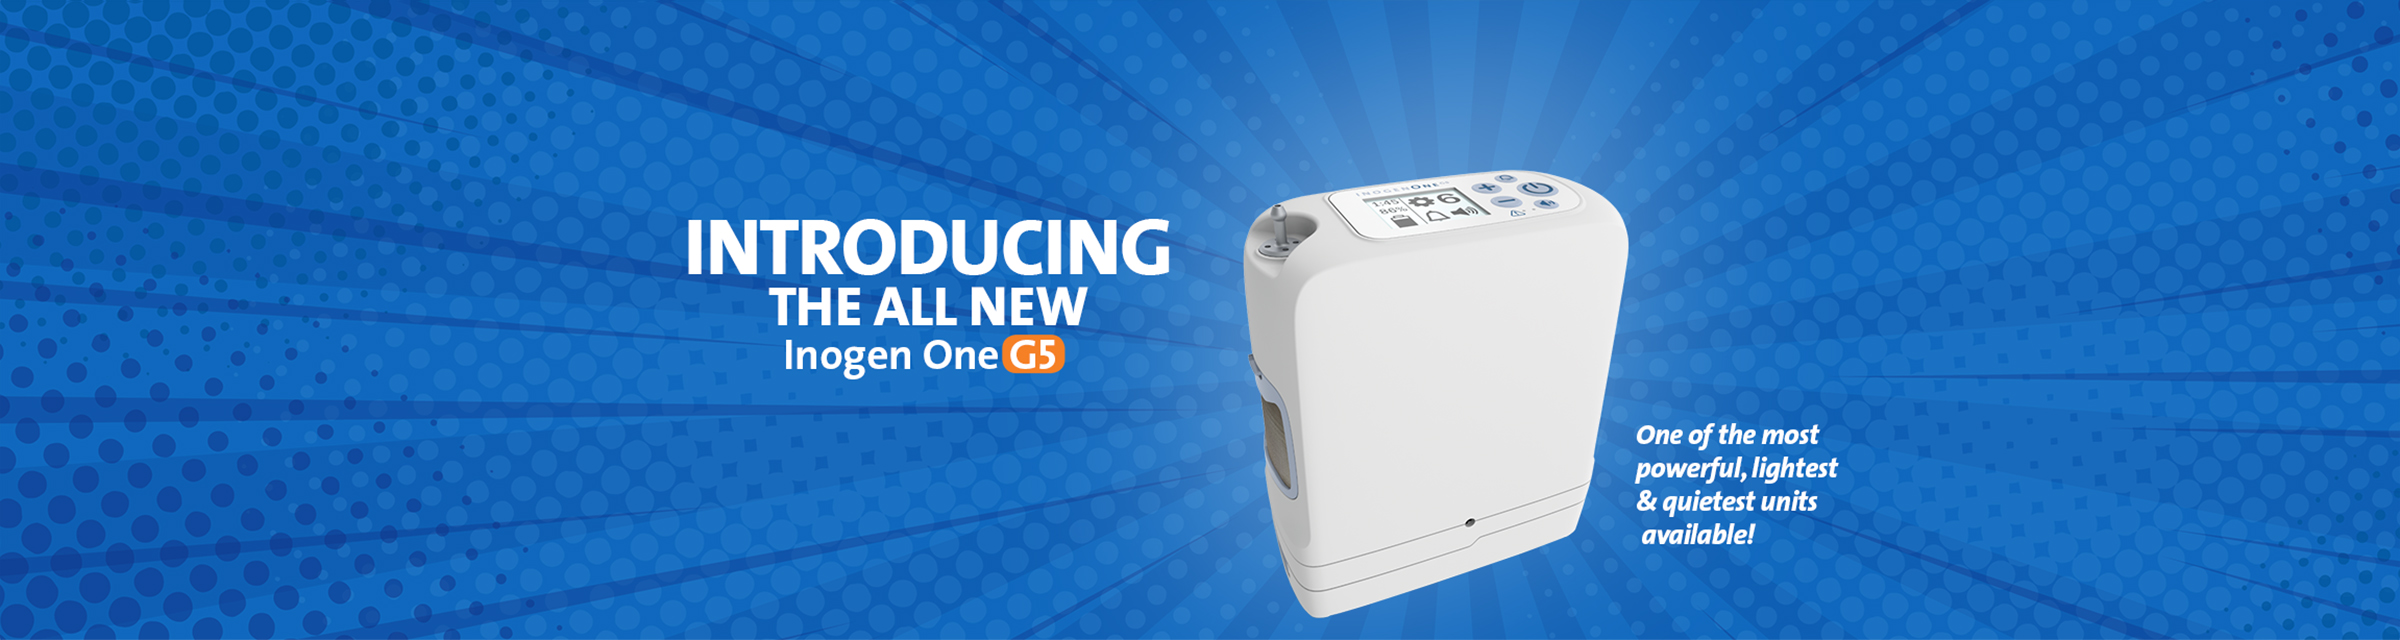 Introducing the all new Inogen One G5. One of the most powerful, lightest & quietest units available!